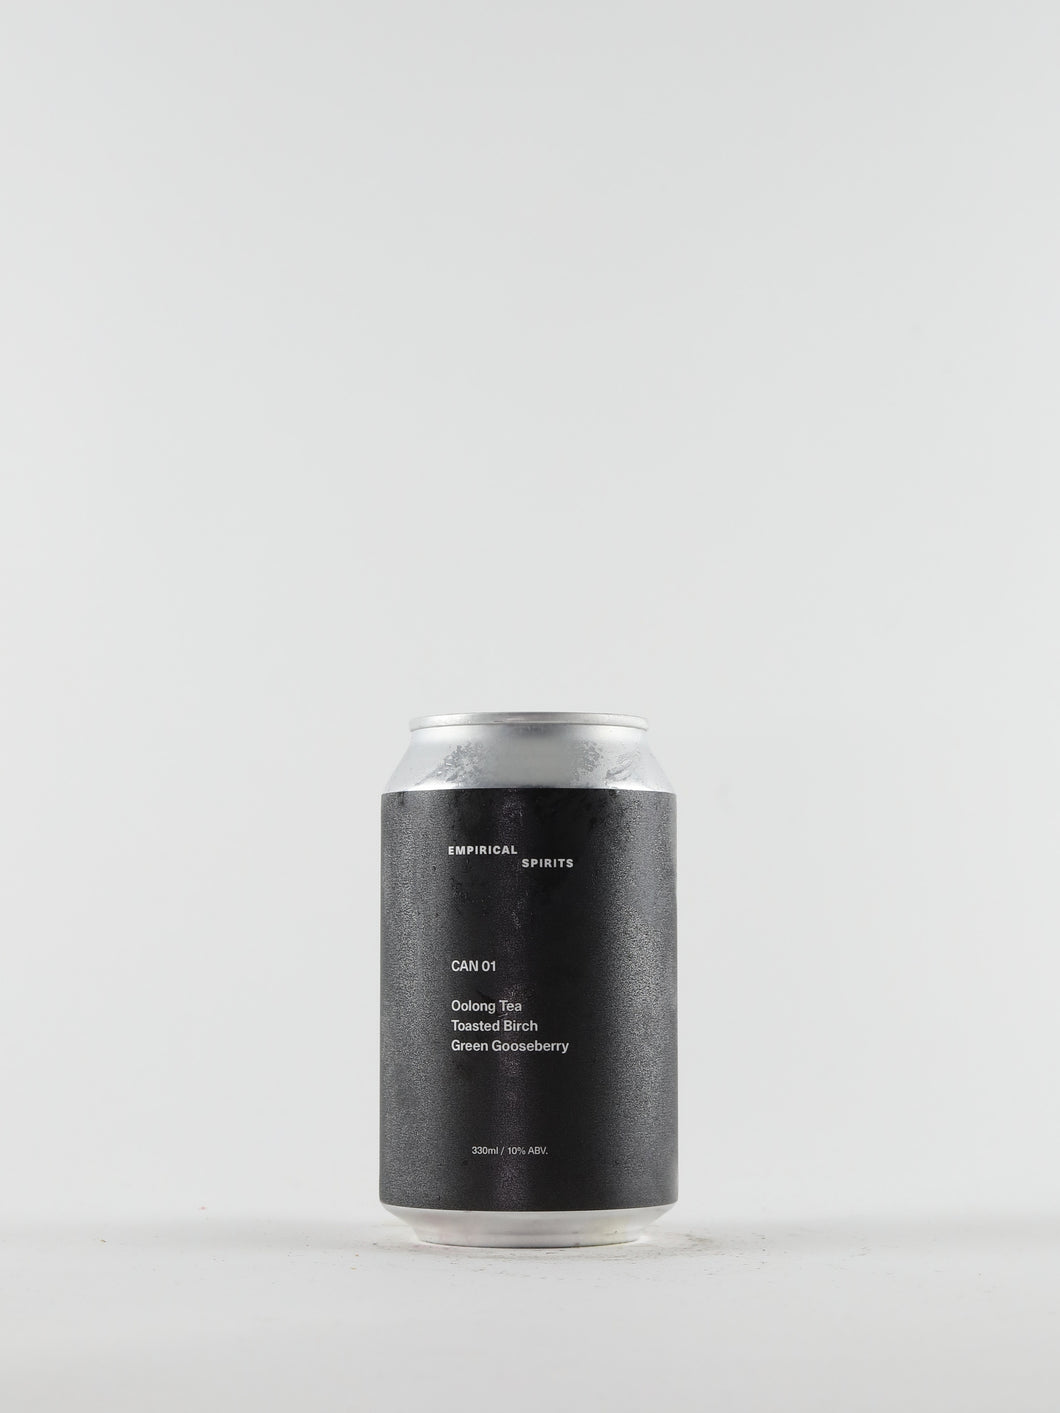 CAN 01 (OOLONG TEA) - Empirical Spirits